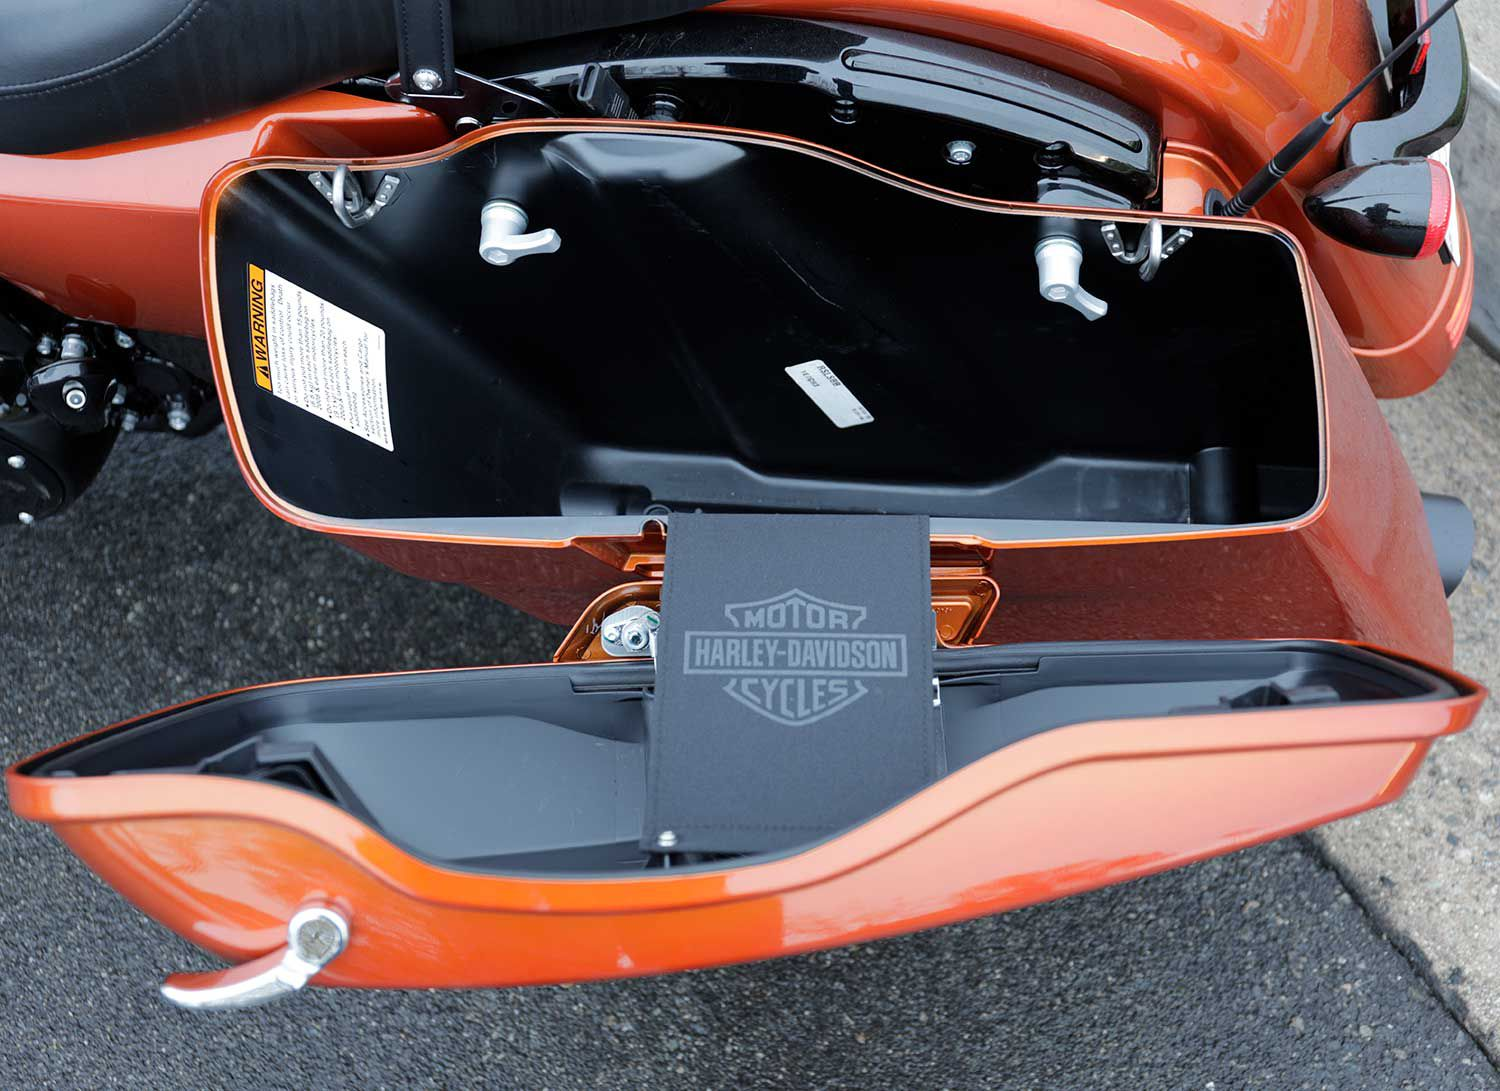 Touring-friendly. Two lockable storage cases make it easier to escape town for the day, or night.